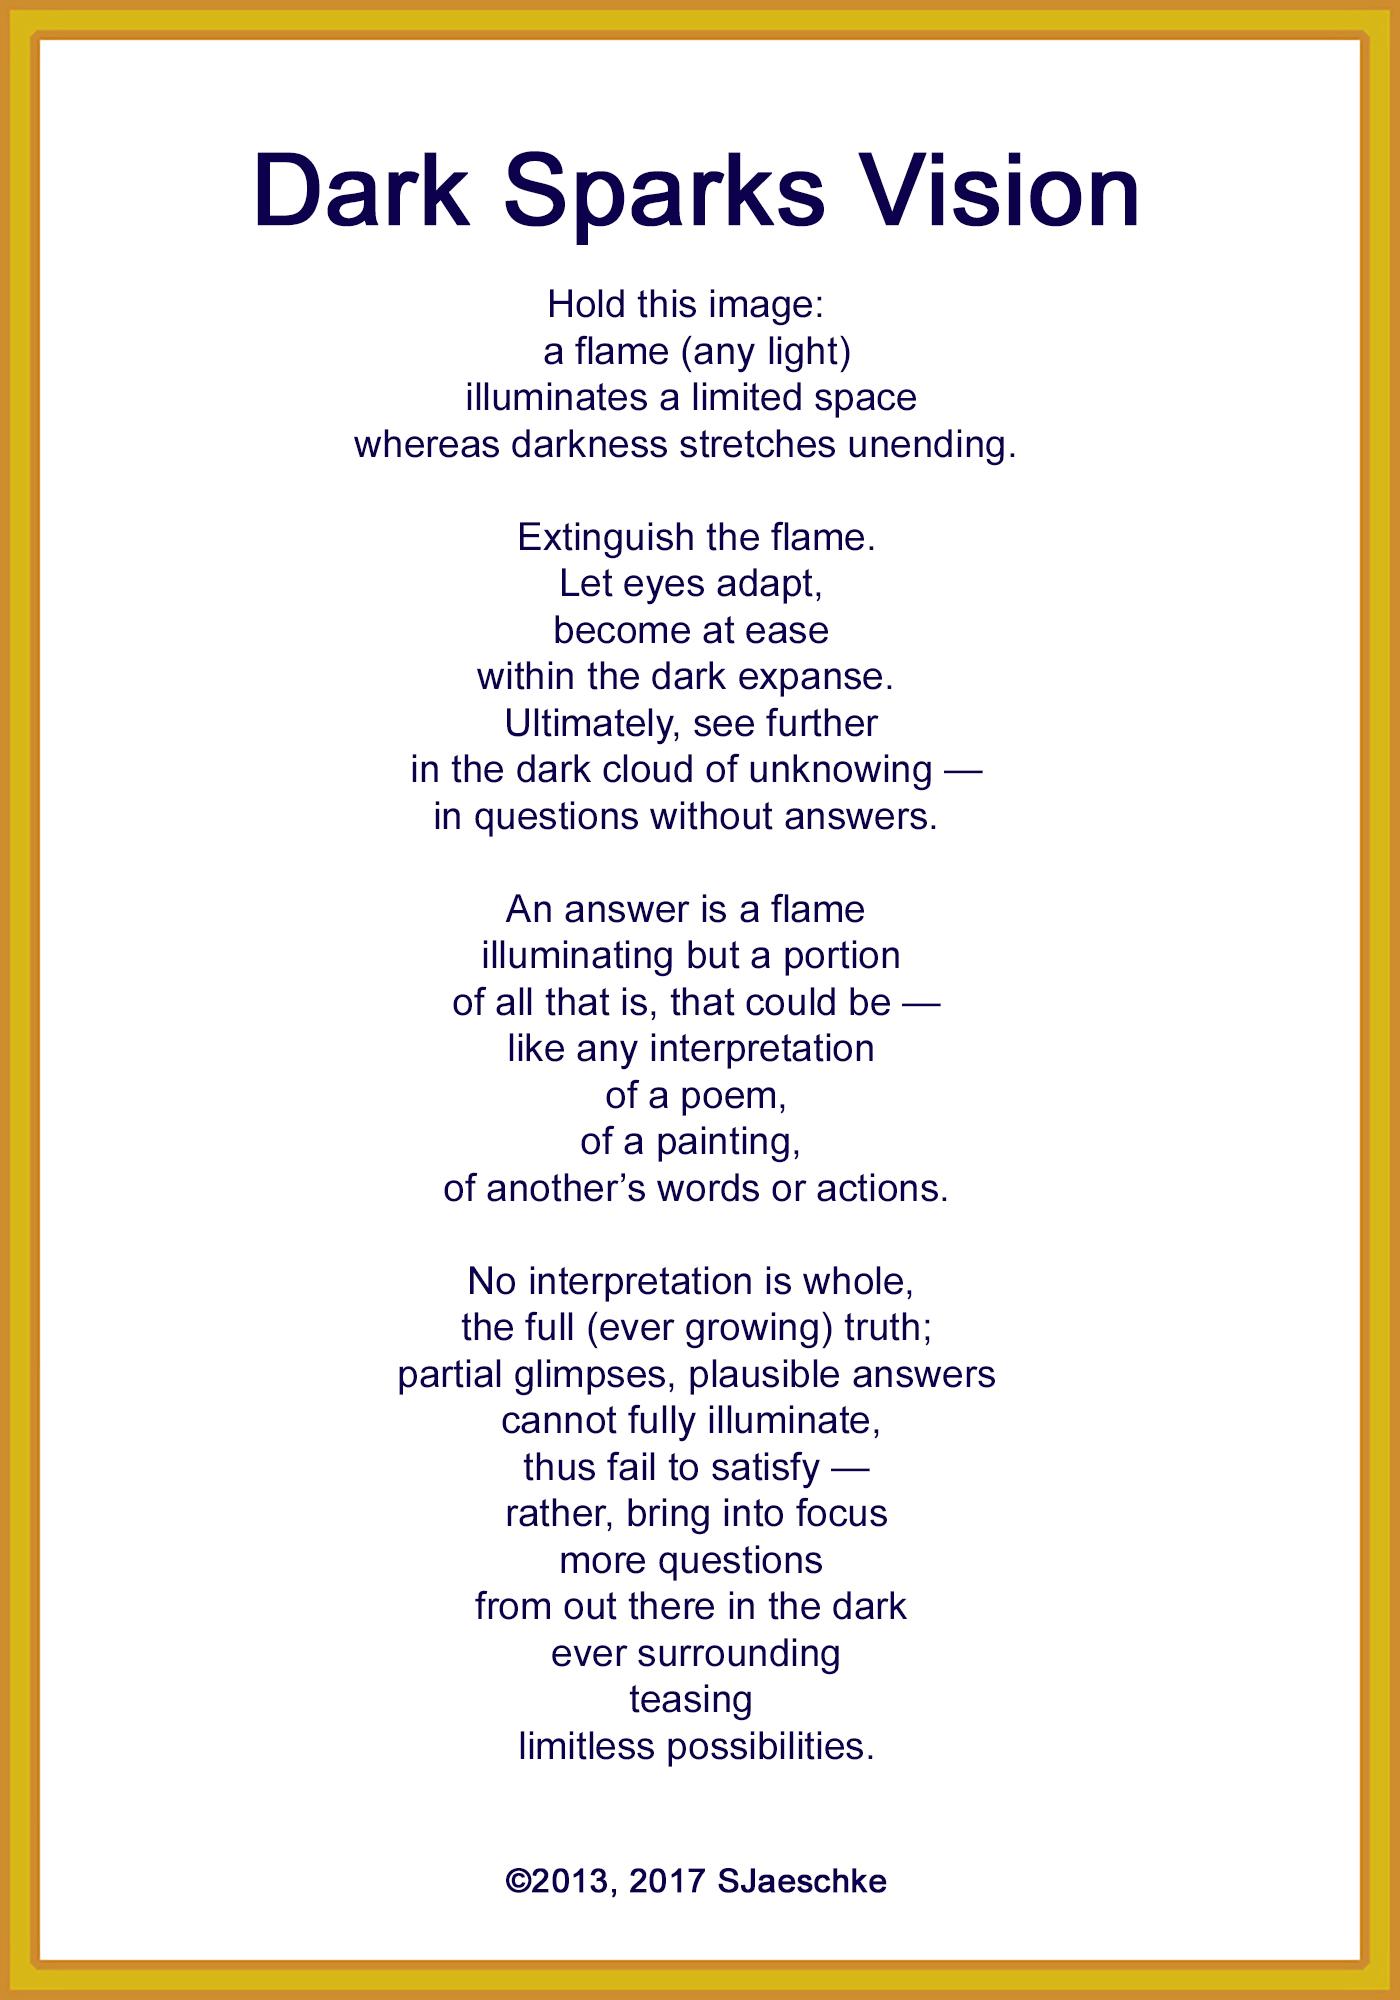 Post_2017-08-27_Poem_DarkSparksVision